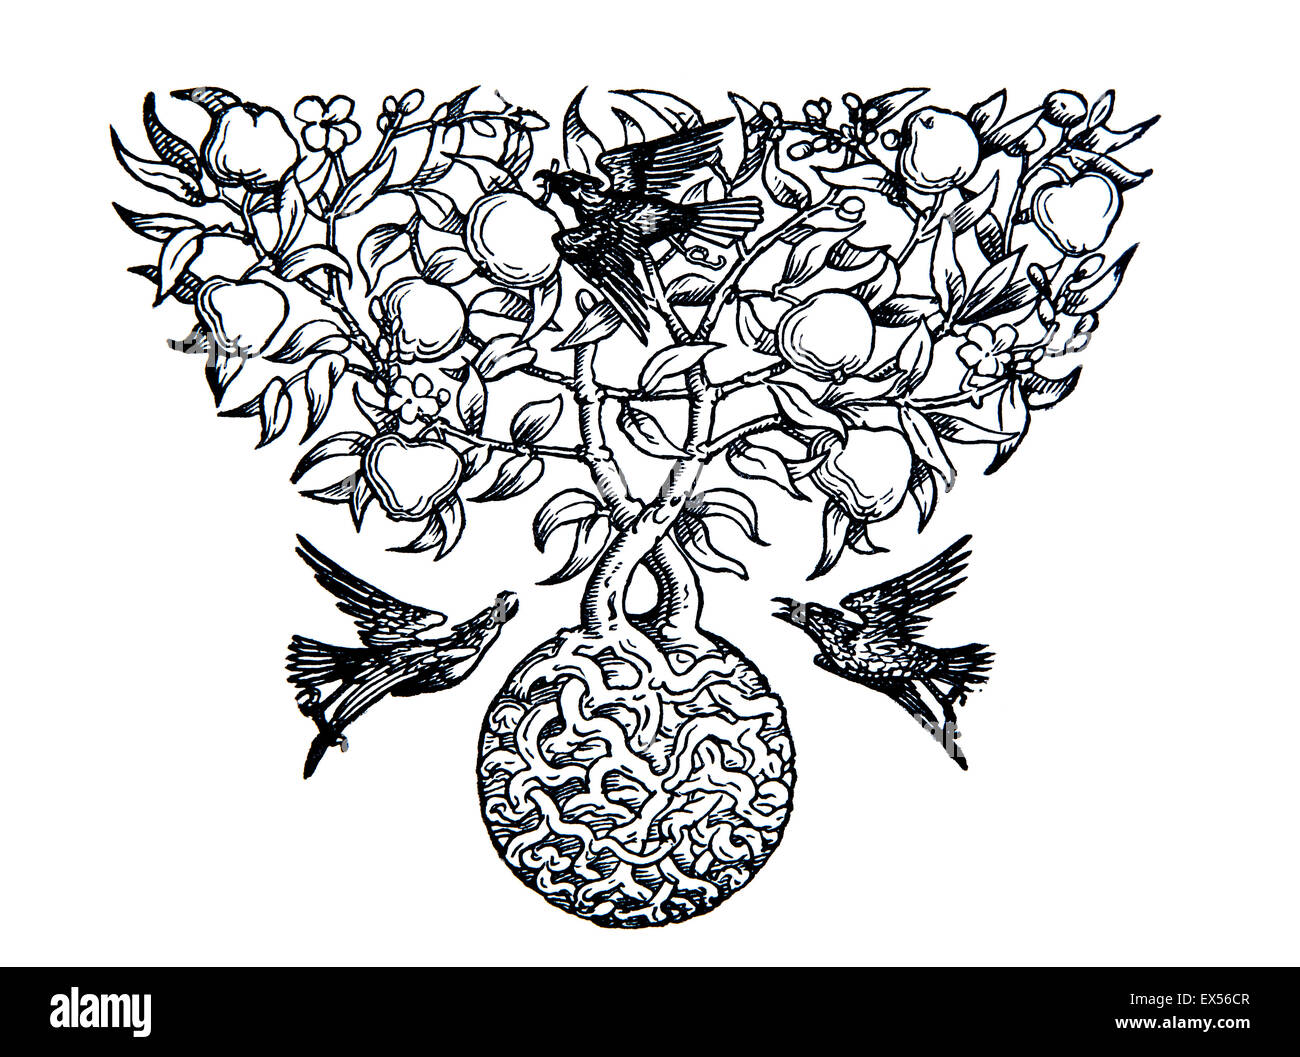 birds taking fruit from tree of life, belle epoque line illustration endpiece - Stock Image